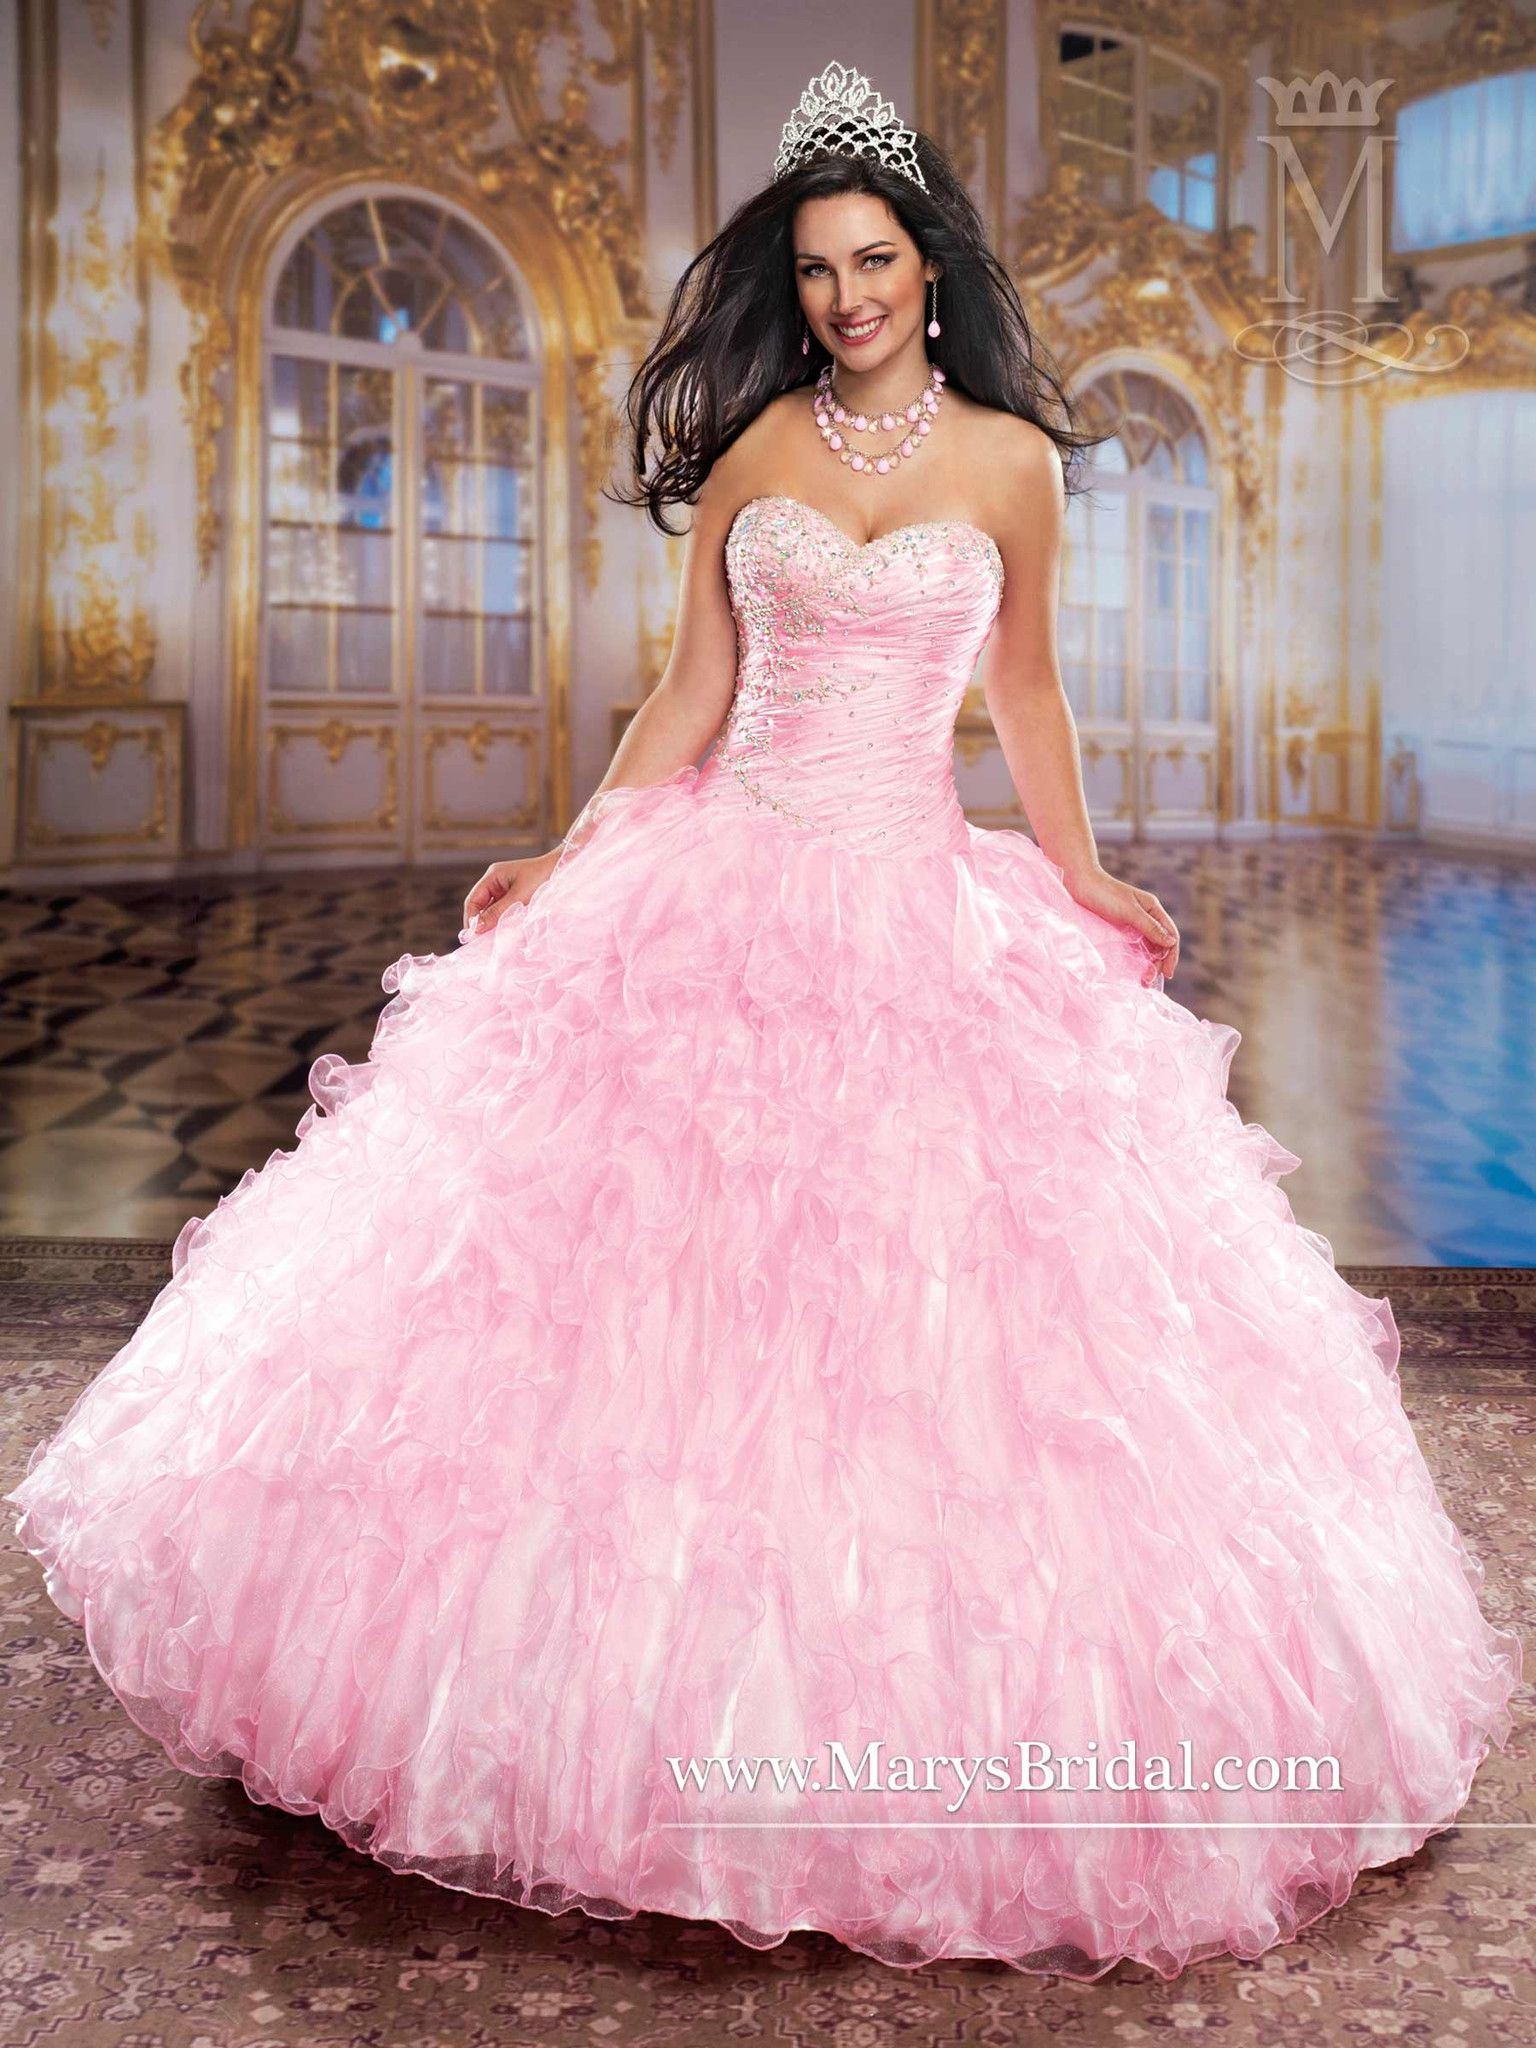 Mary\'s Bridal Princess Collection Quinceanera Dress Style 4Q769 ...